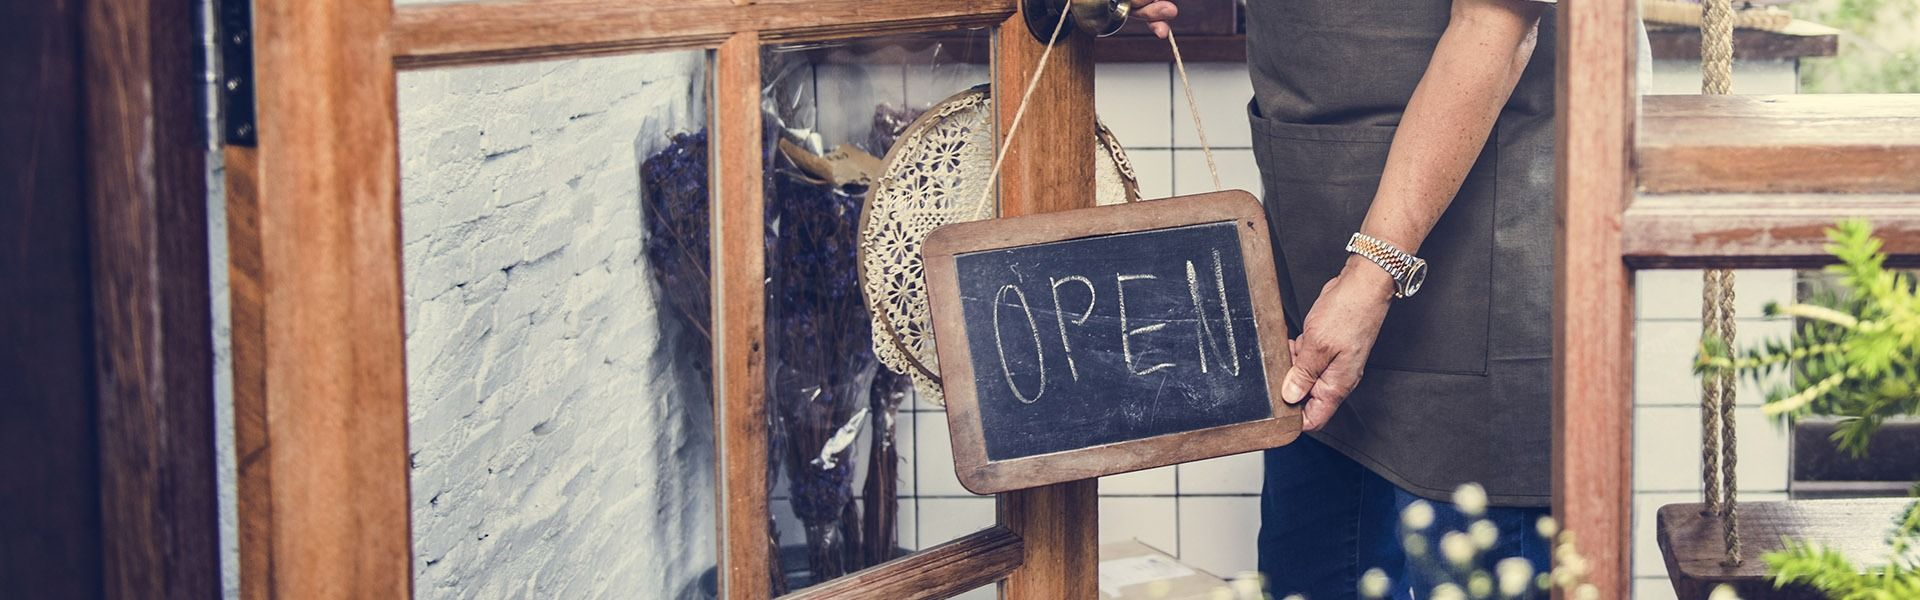 Reopening has begun: How keen are Americans to step out? - Piplsay